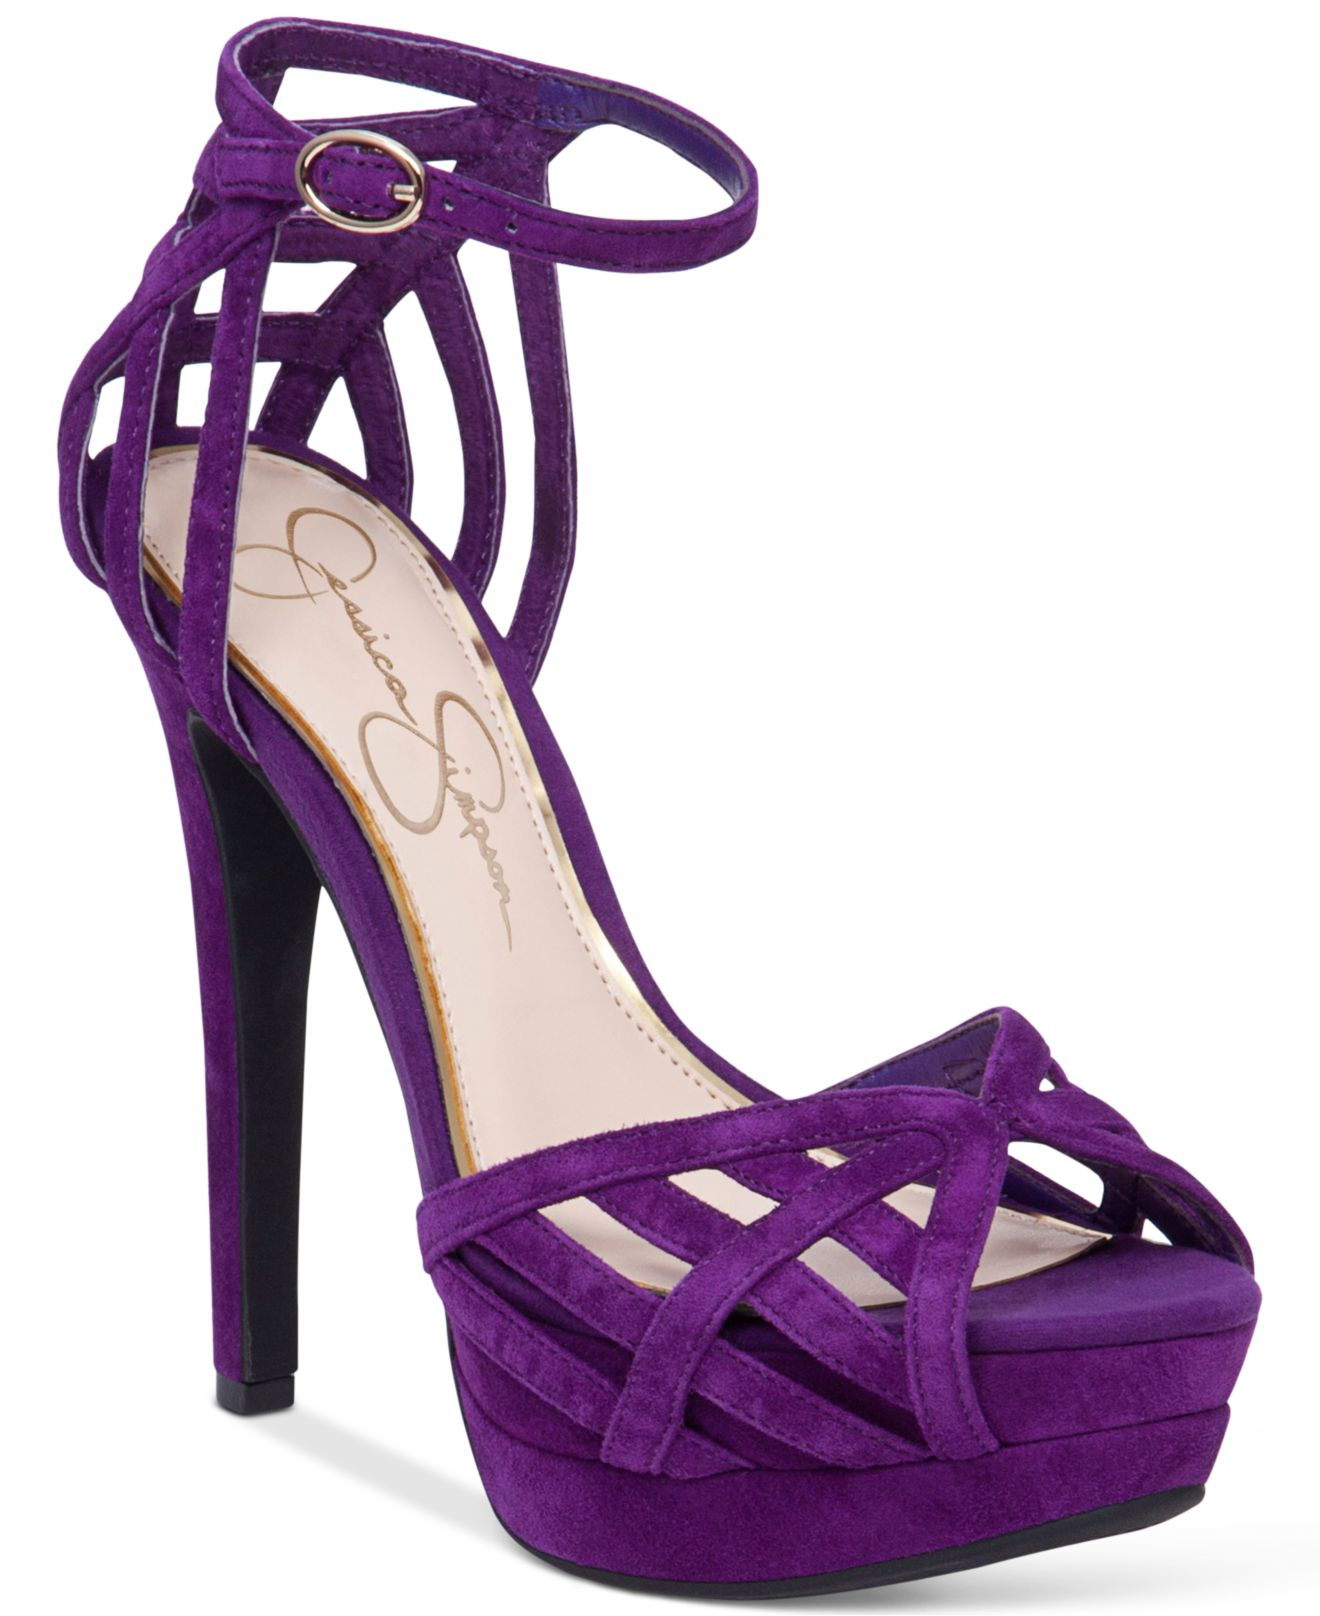 Jessica simpson Sylla Platform Dress Sandals in Purple | Lyst